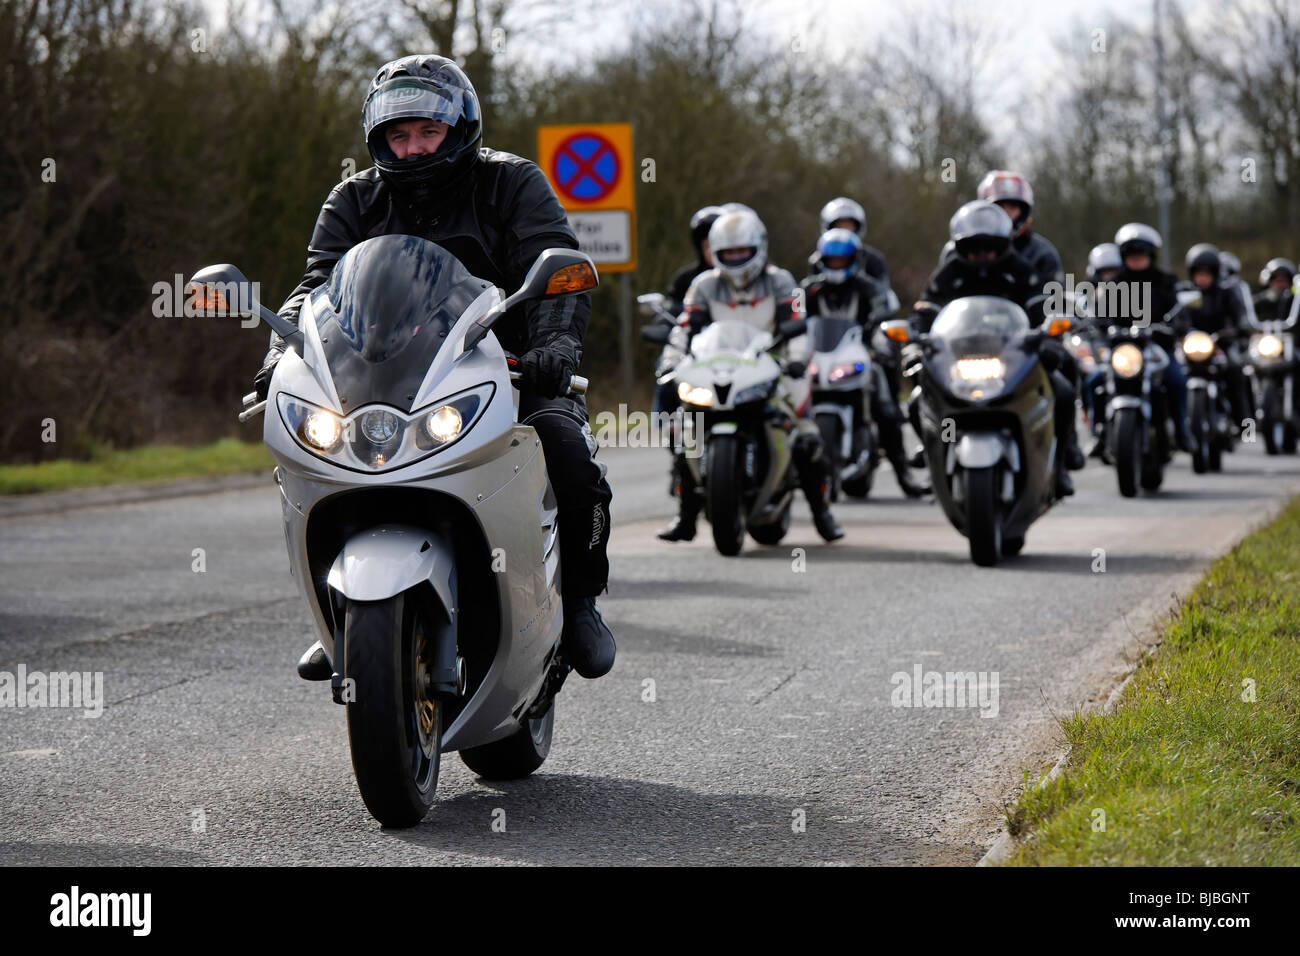 Motorcycles - Stock Image